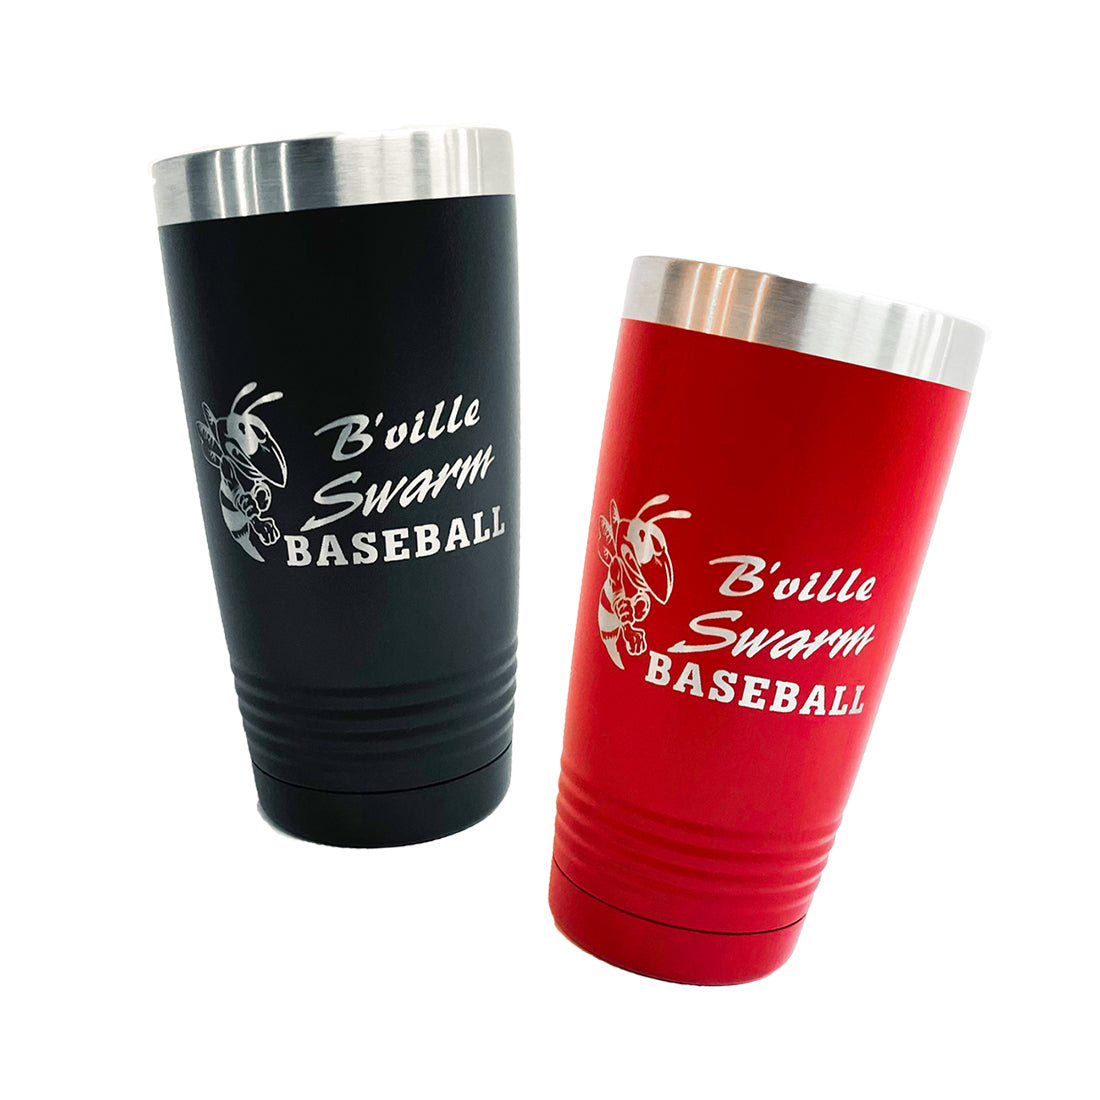 """B'ville Swarm Baseball"" 20oz. Insulated Tumblers"